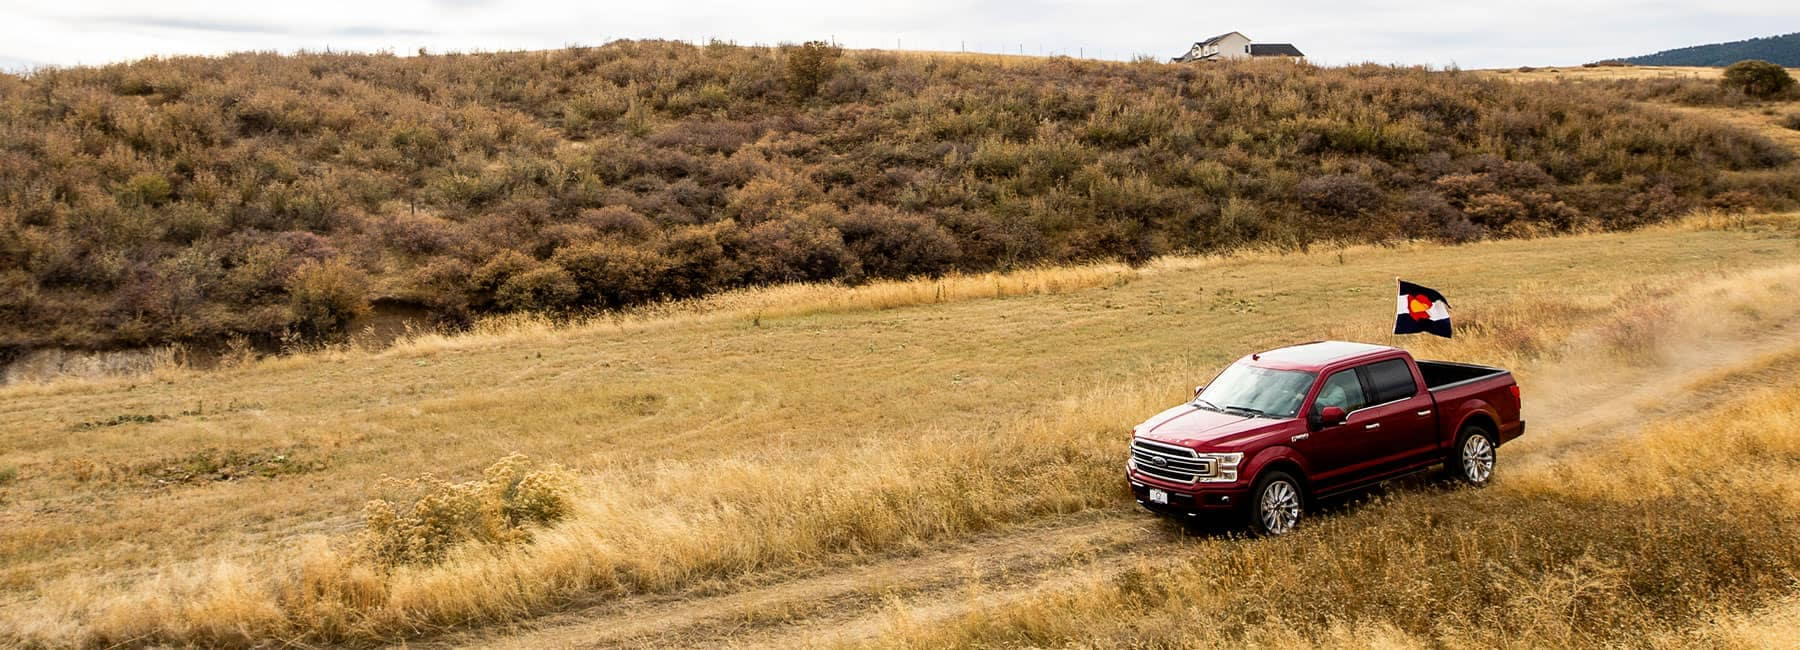 Ford truck driving through a field with the Colorado State Flag